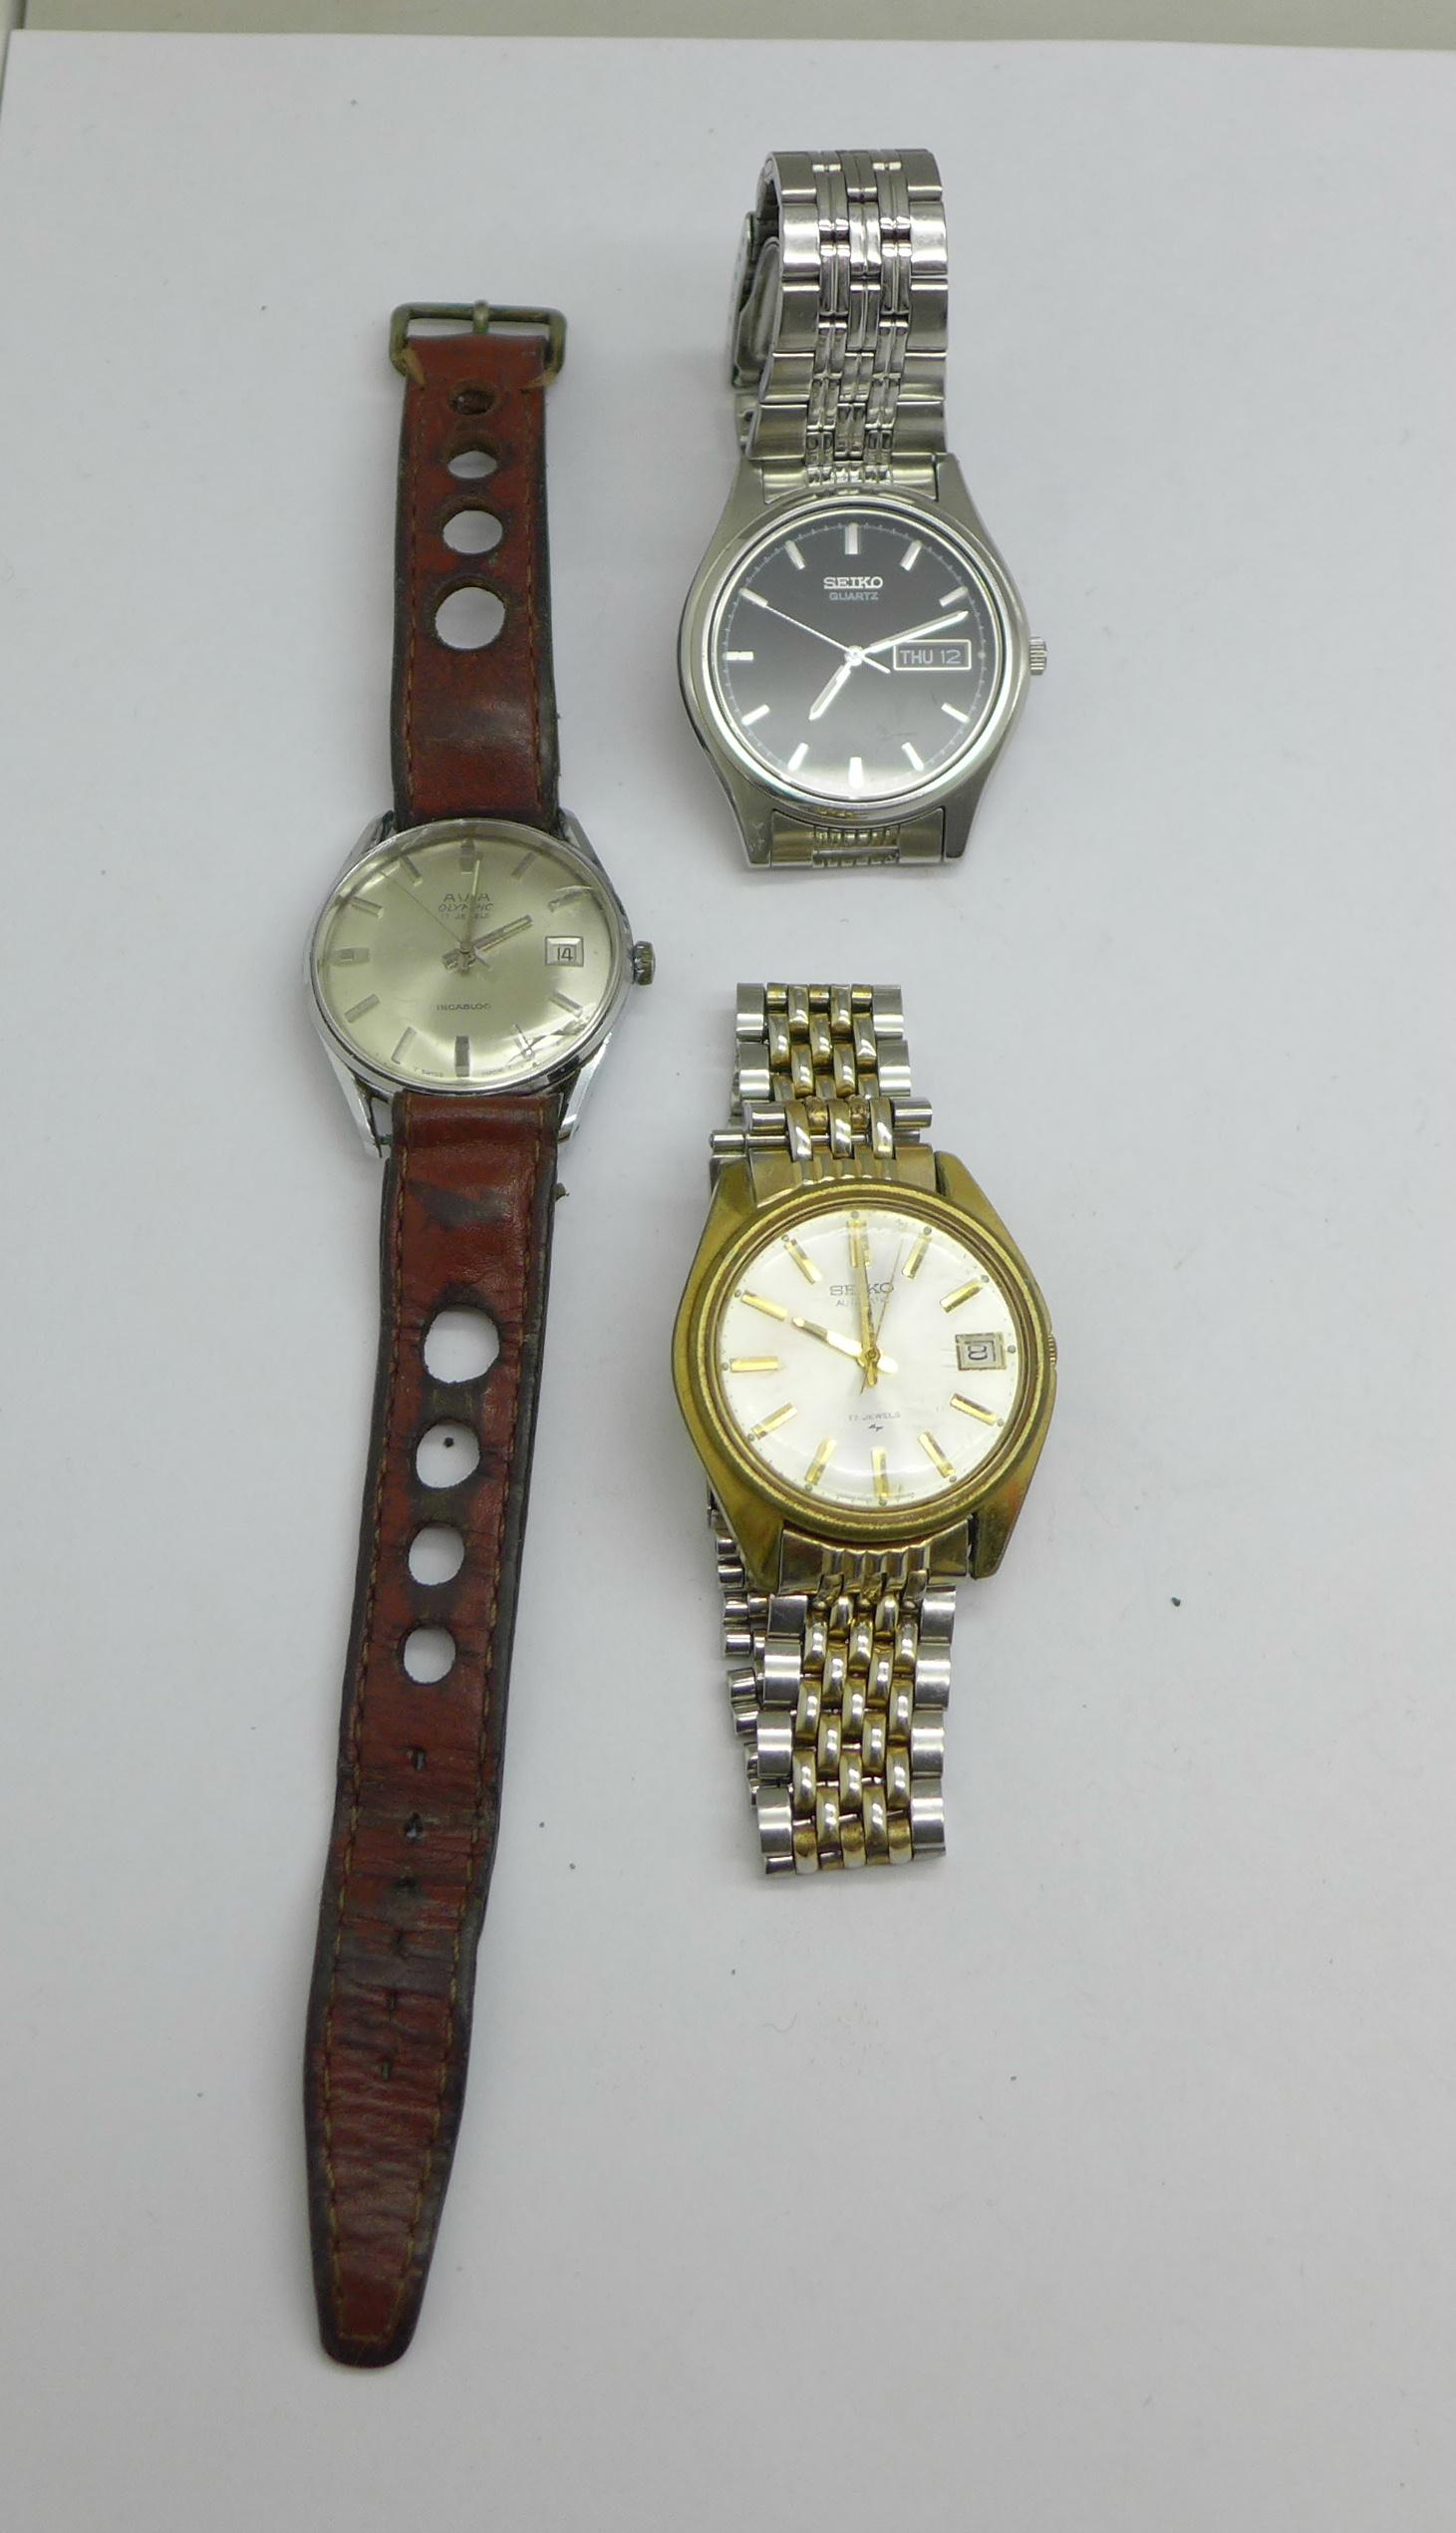 Three wristwatches including Seiko automatic and quartz, and Avia Olympic